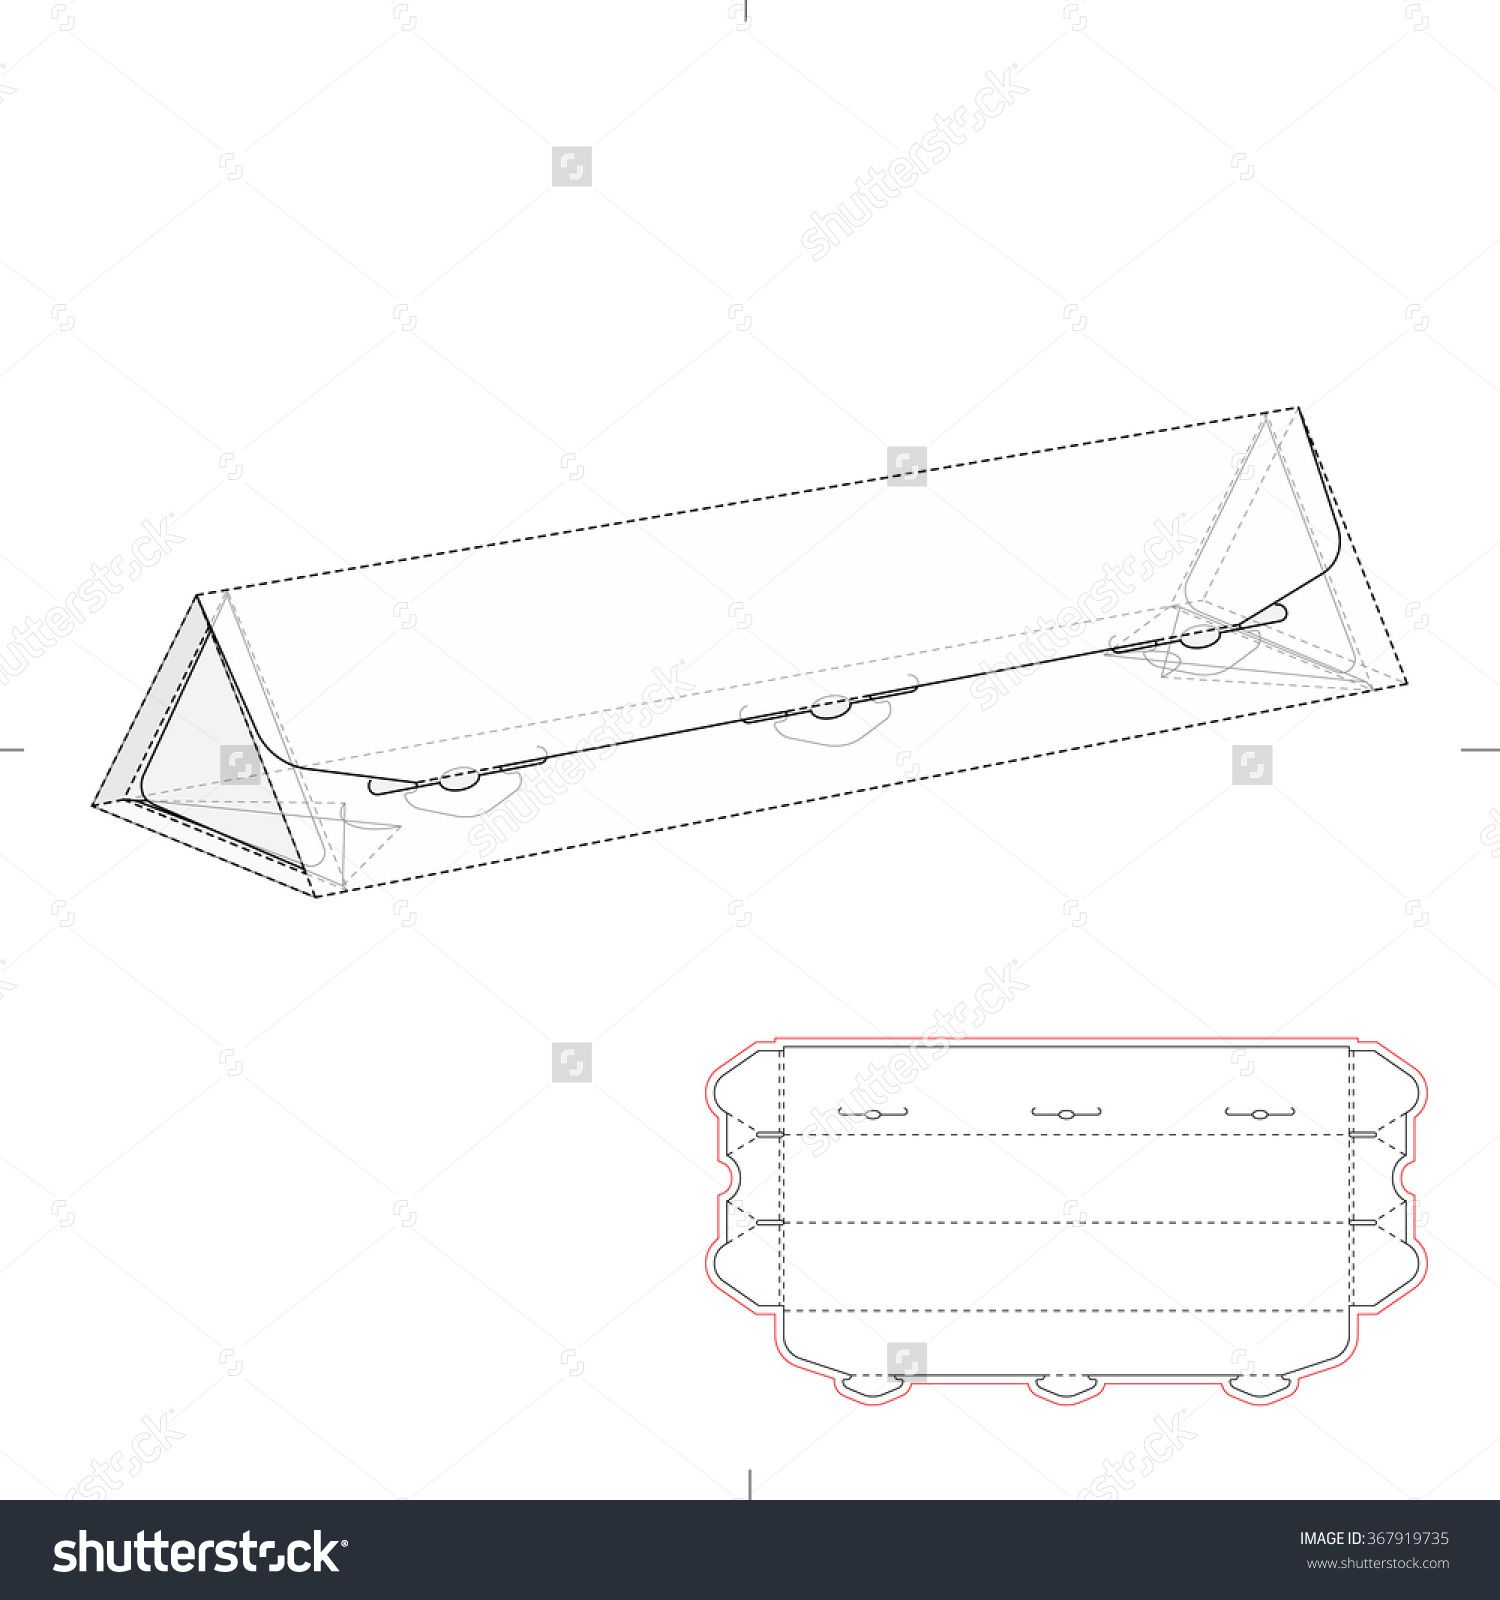 Triangular Tube With Die Cut Template Stock Vector Illustration 367919735 : Shutterstock